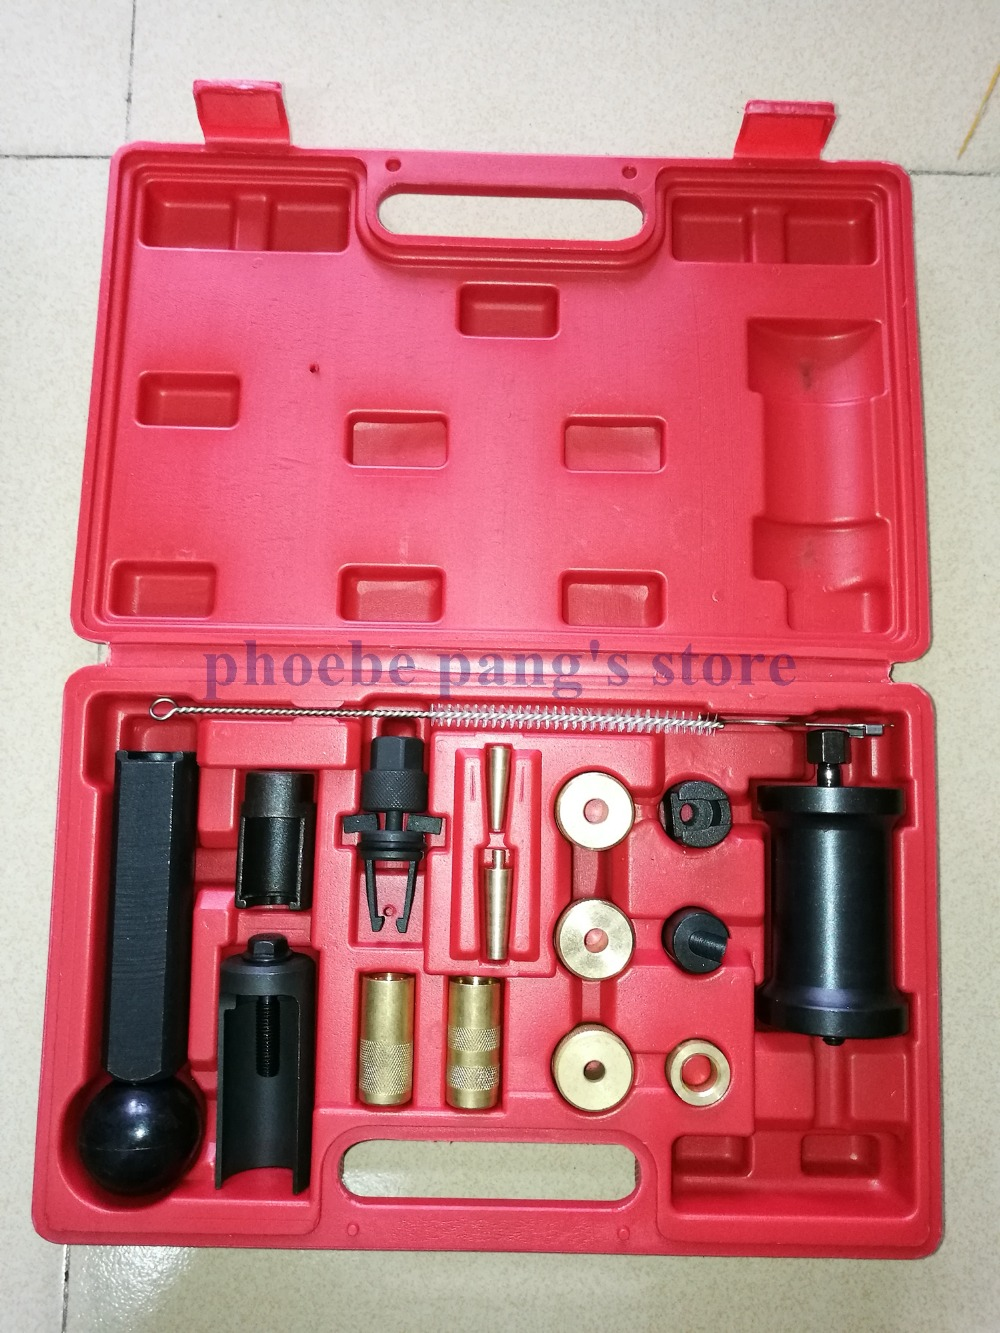 FSI Engine Fuel Injector Puller Oil Atomizer Sprayer Installation Removal  Tool Kit For VW For Audi Car Repair Tools on Aliexpress.com | Alibaba Group